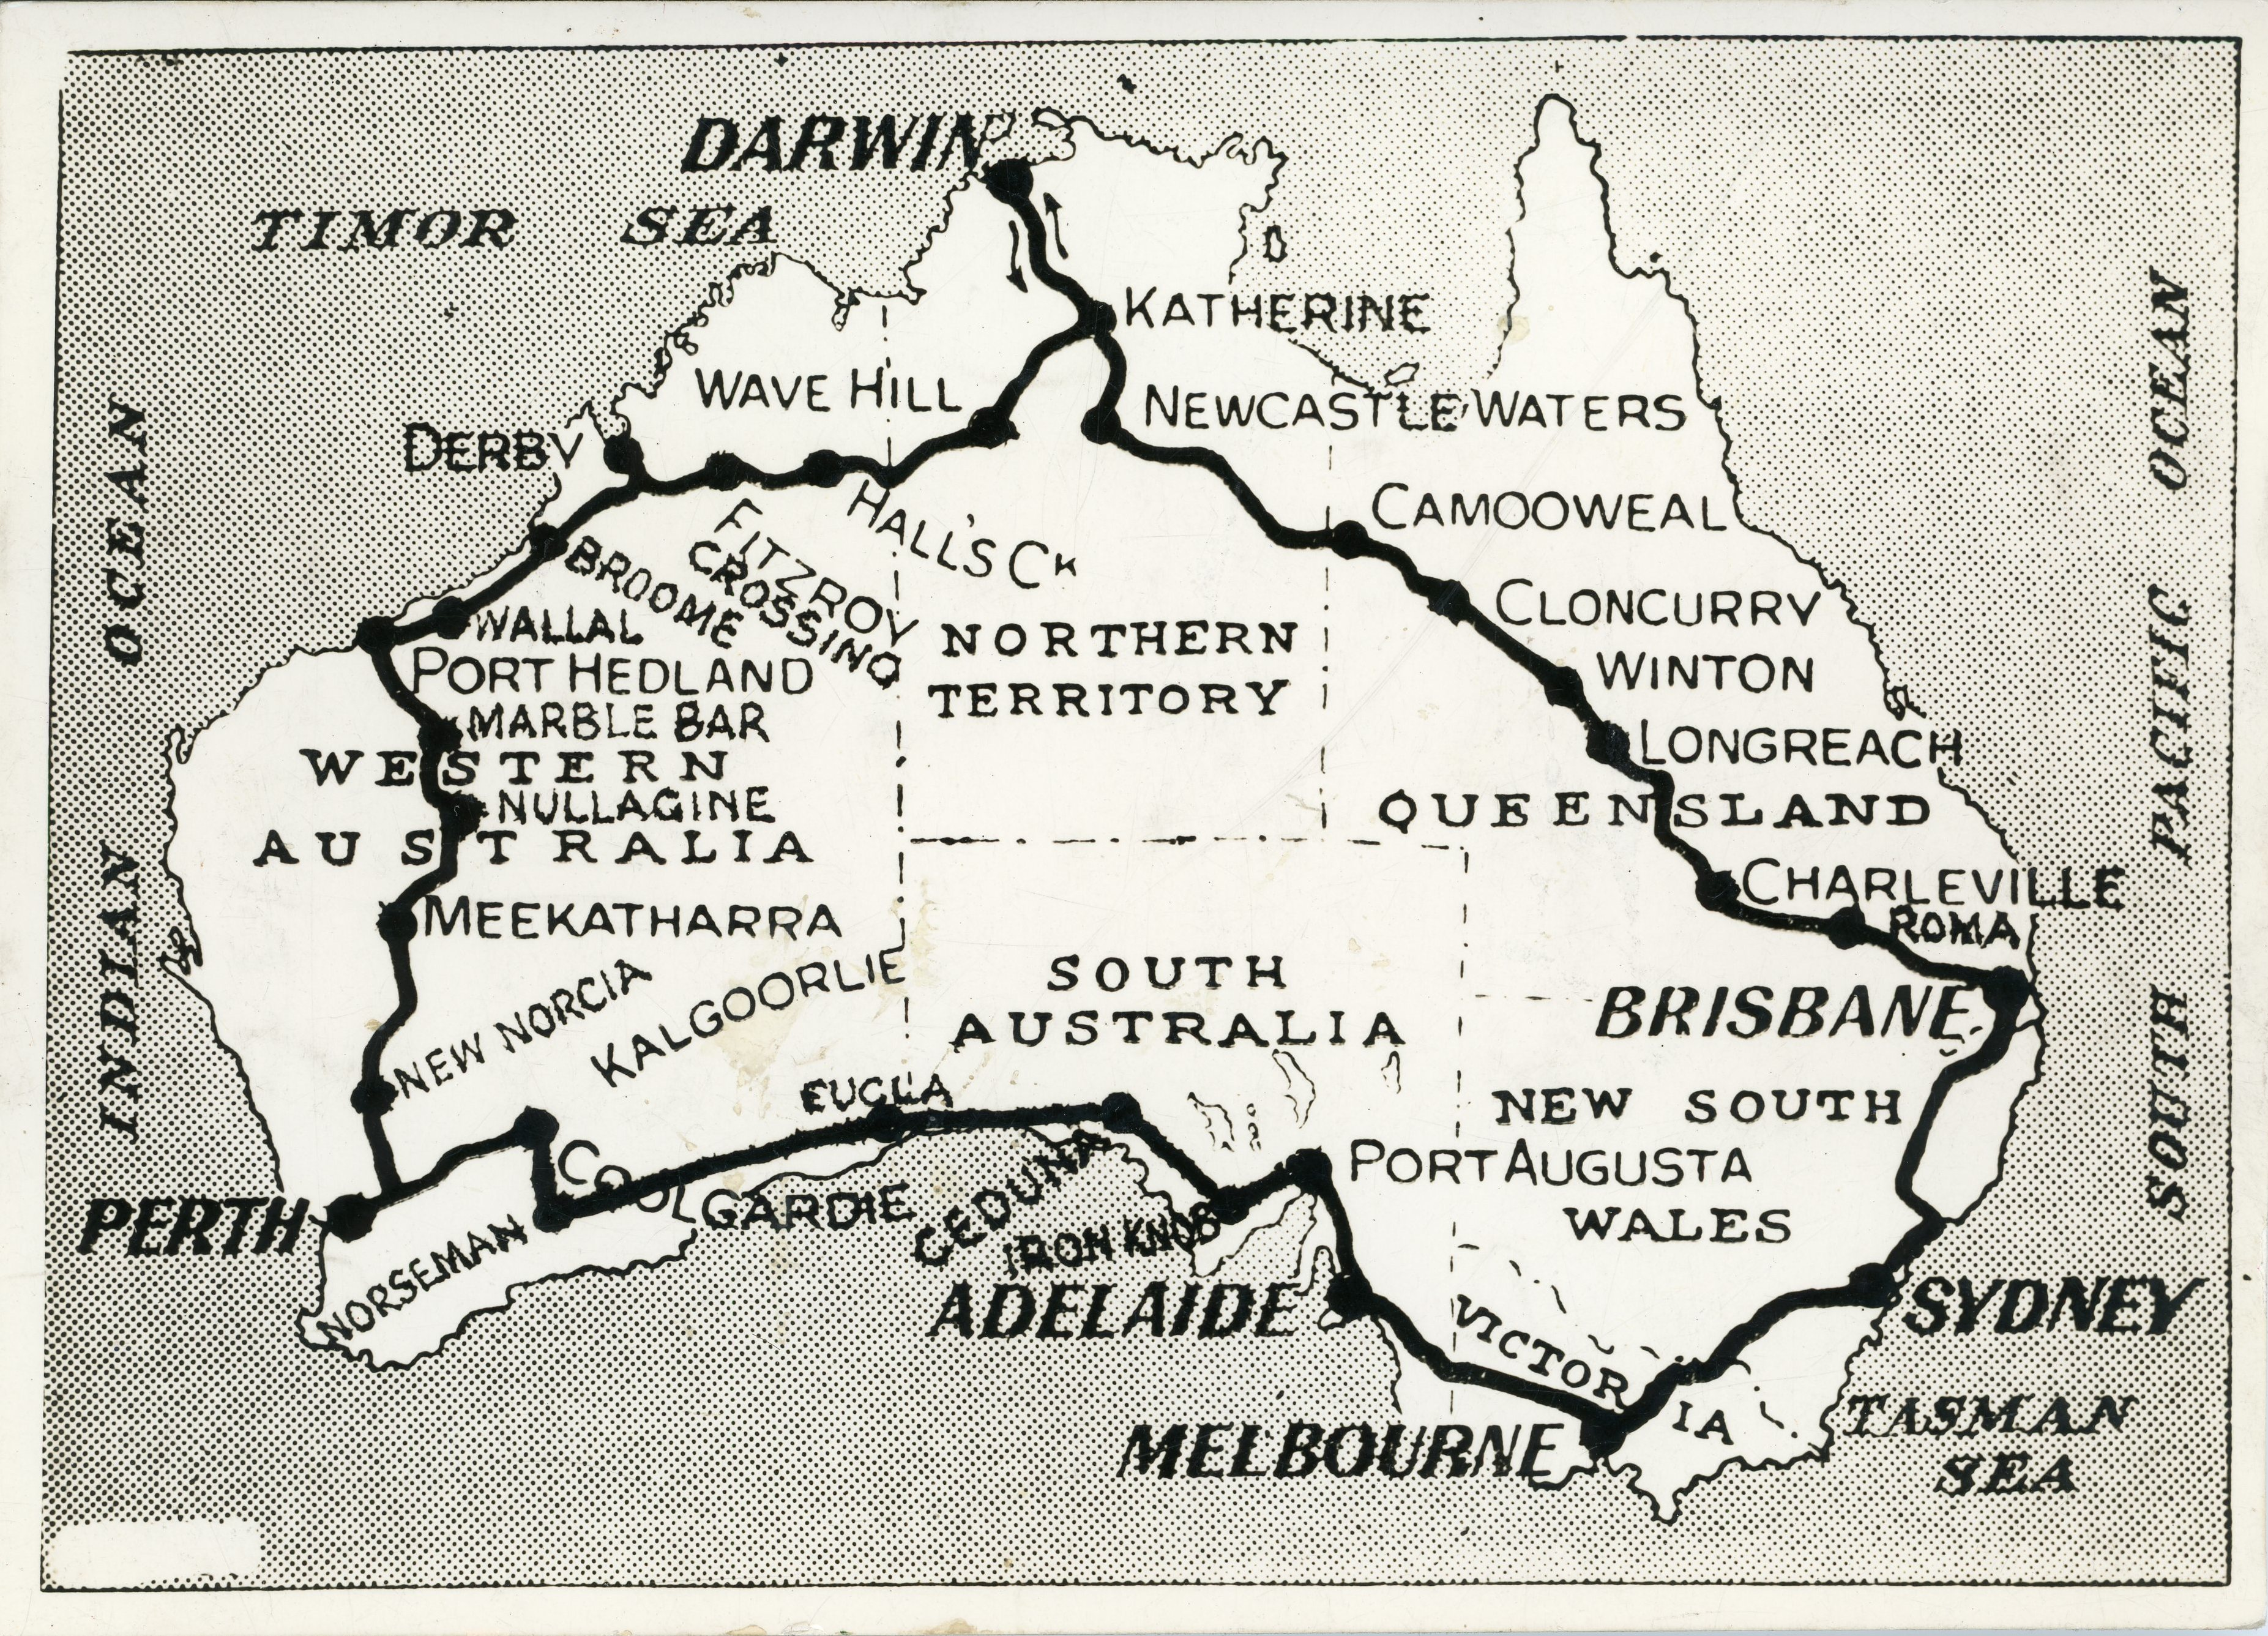 1. Map of Australia Showing Route Followed On Motor Journey of 10,000 miles